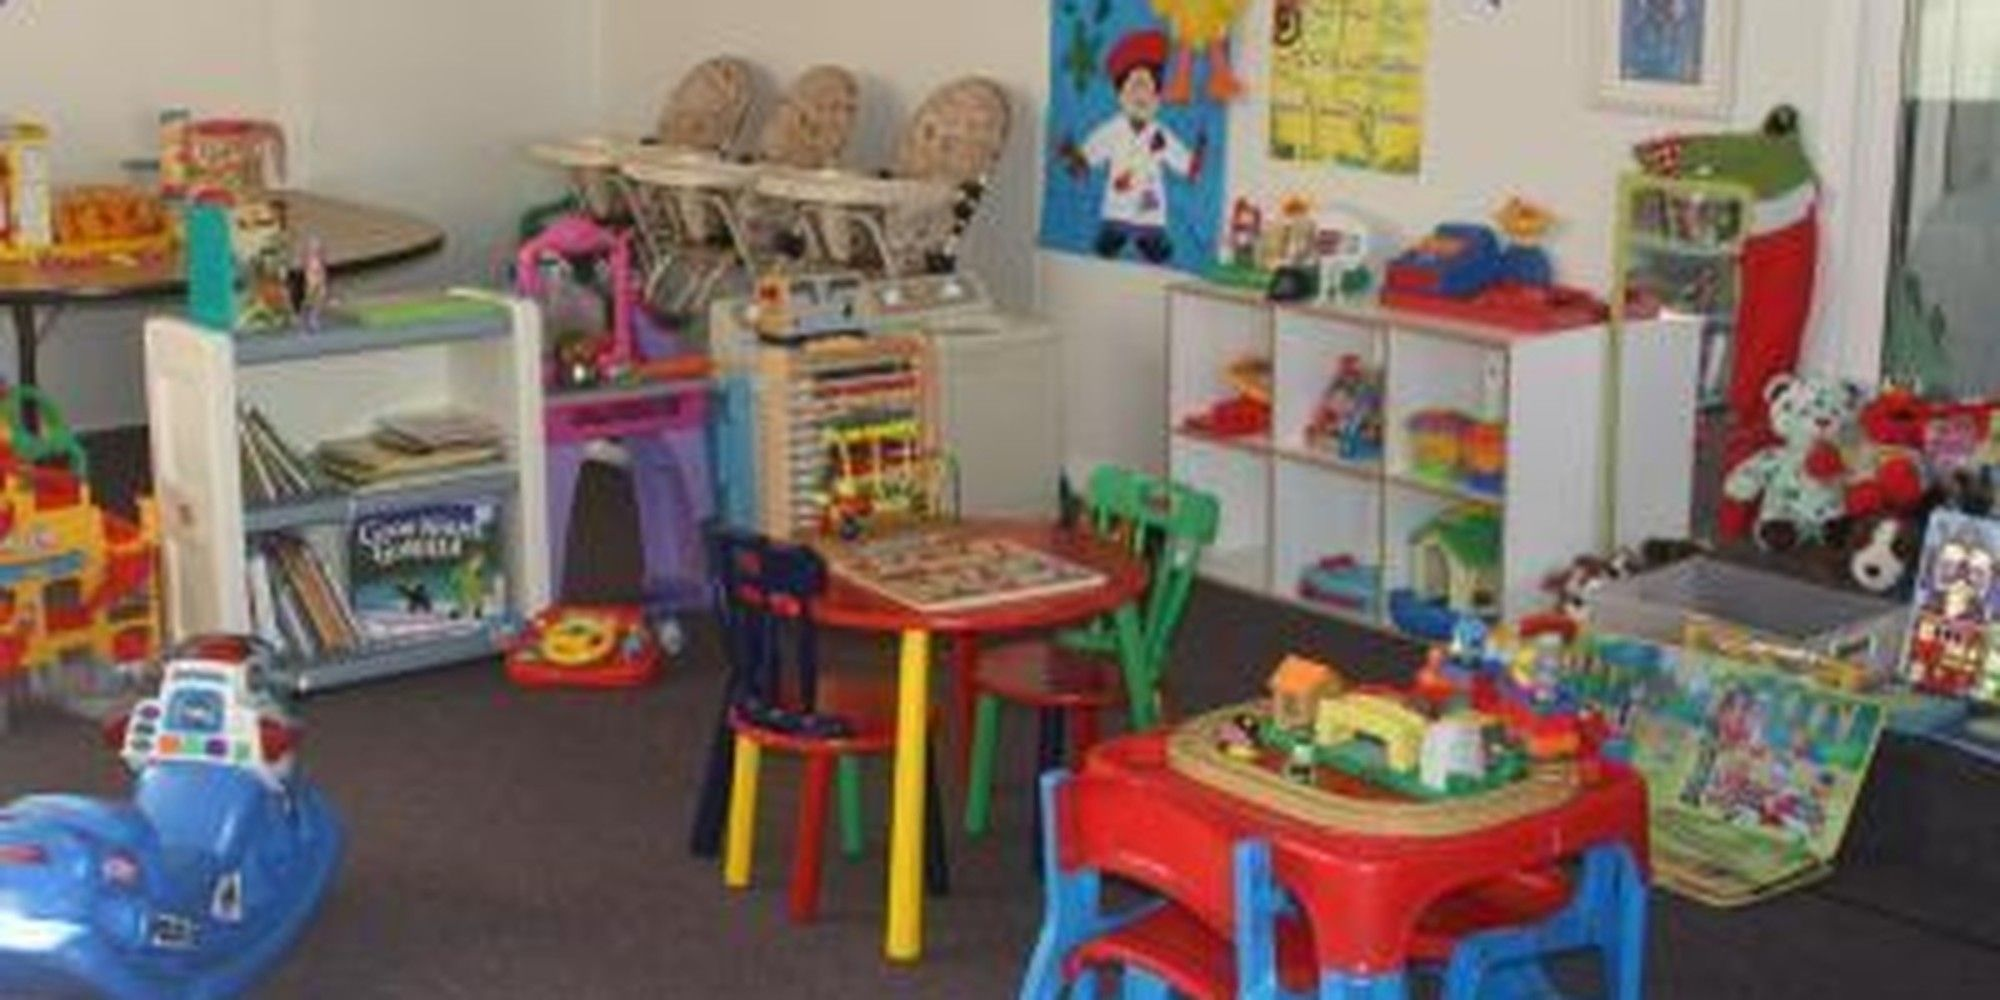 HOW LOCATION IS IMPORTANT TO MAKE A DAY CARE NURSERY